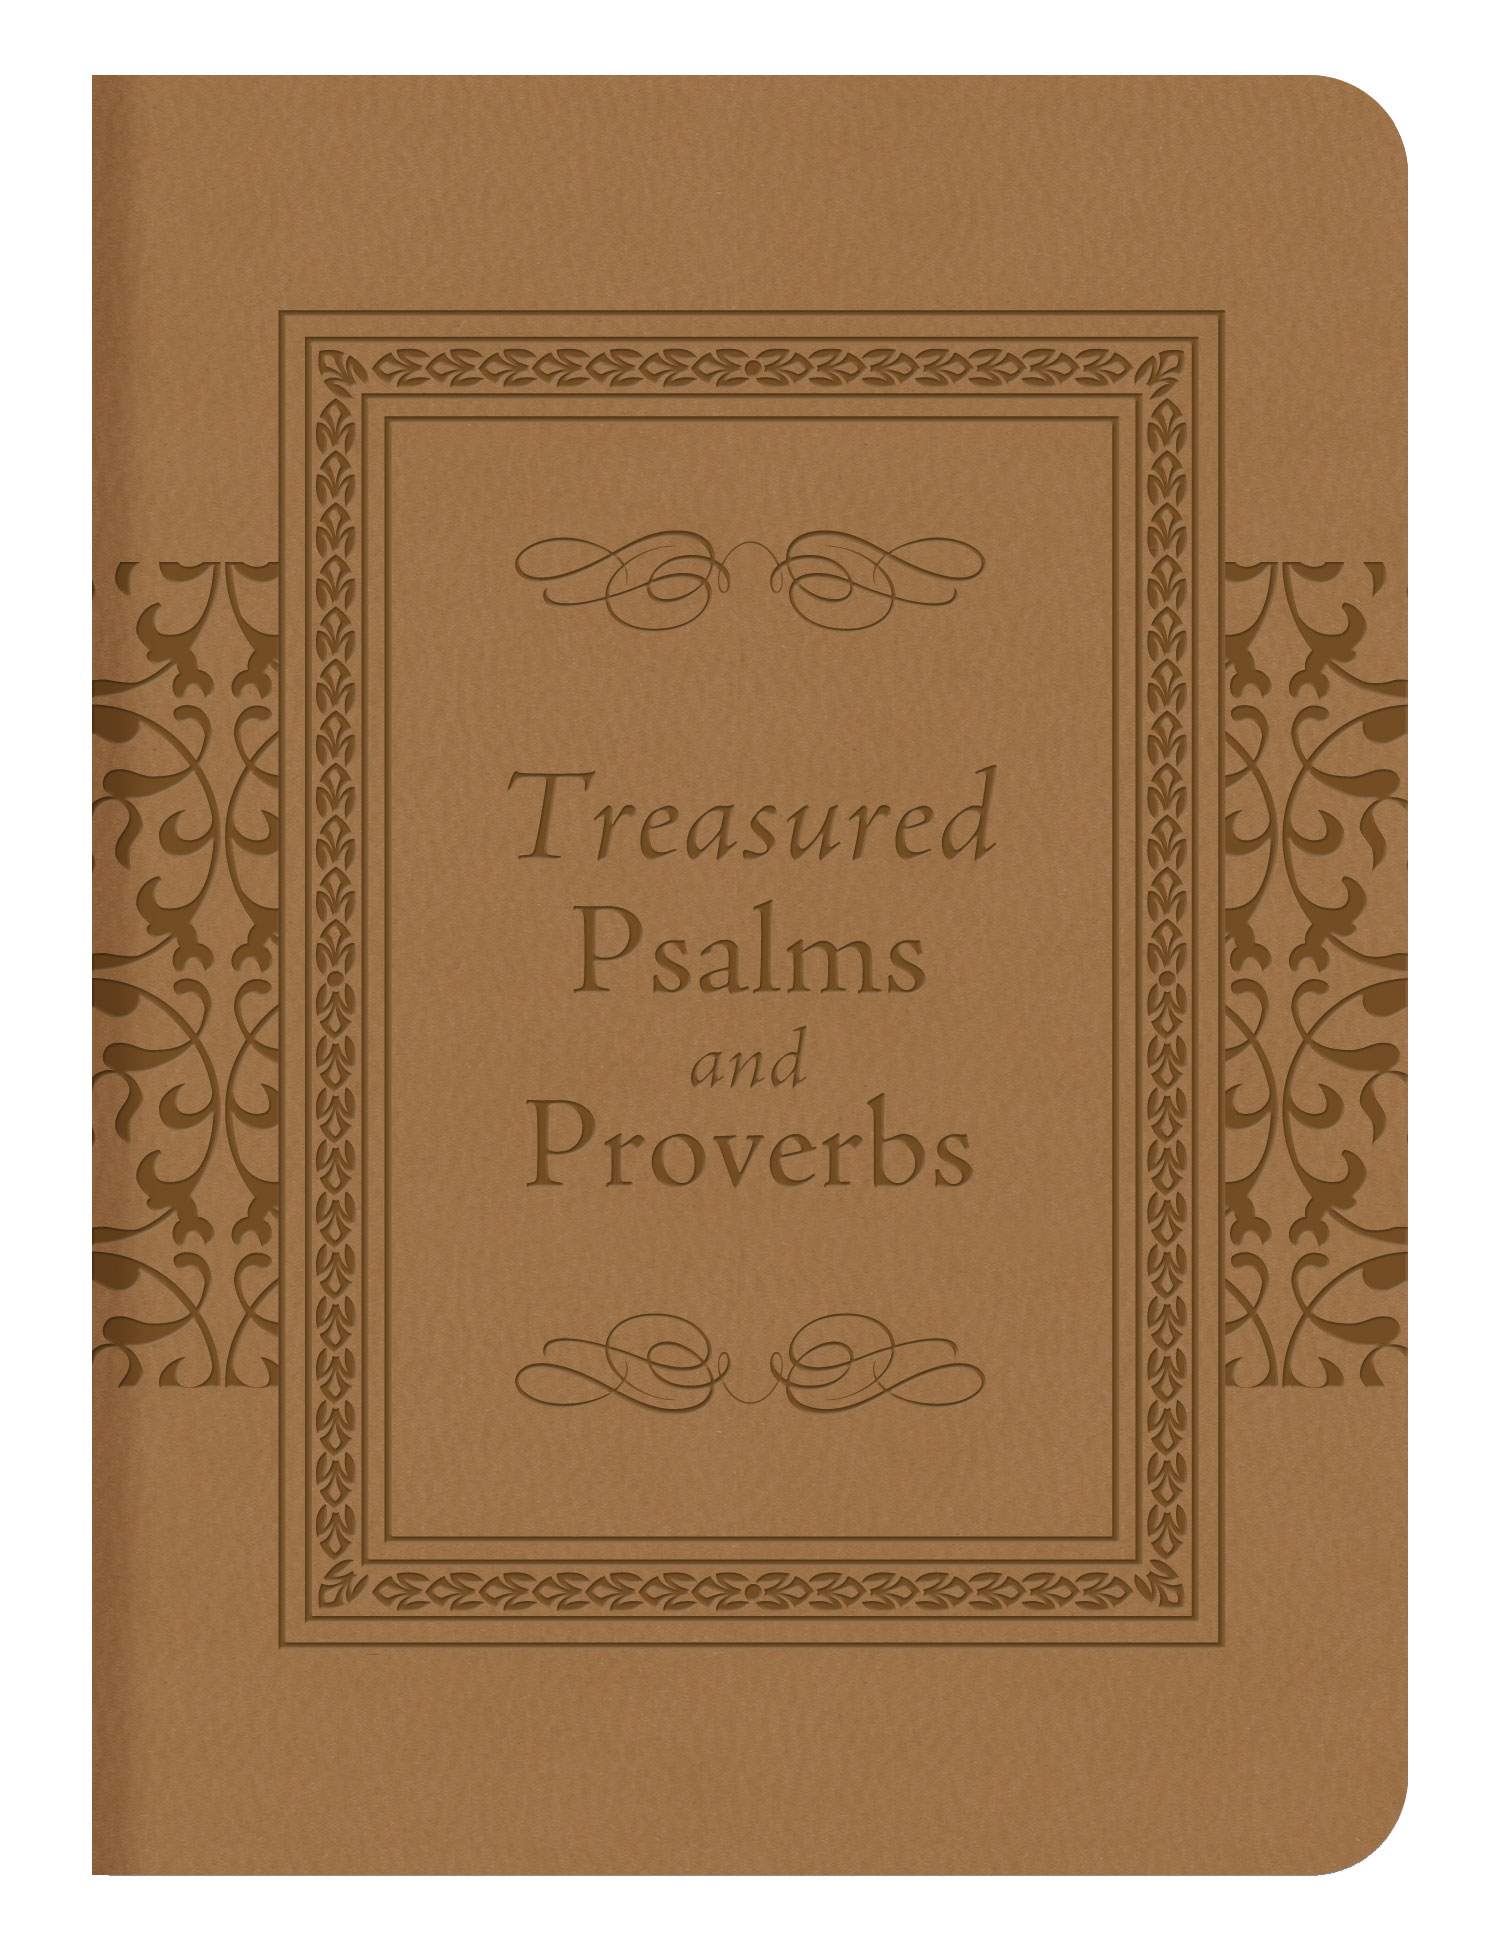 Treasured Psalms and Proverbs By: Barbour Publishing, Inc.